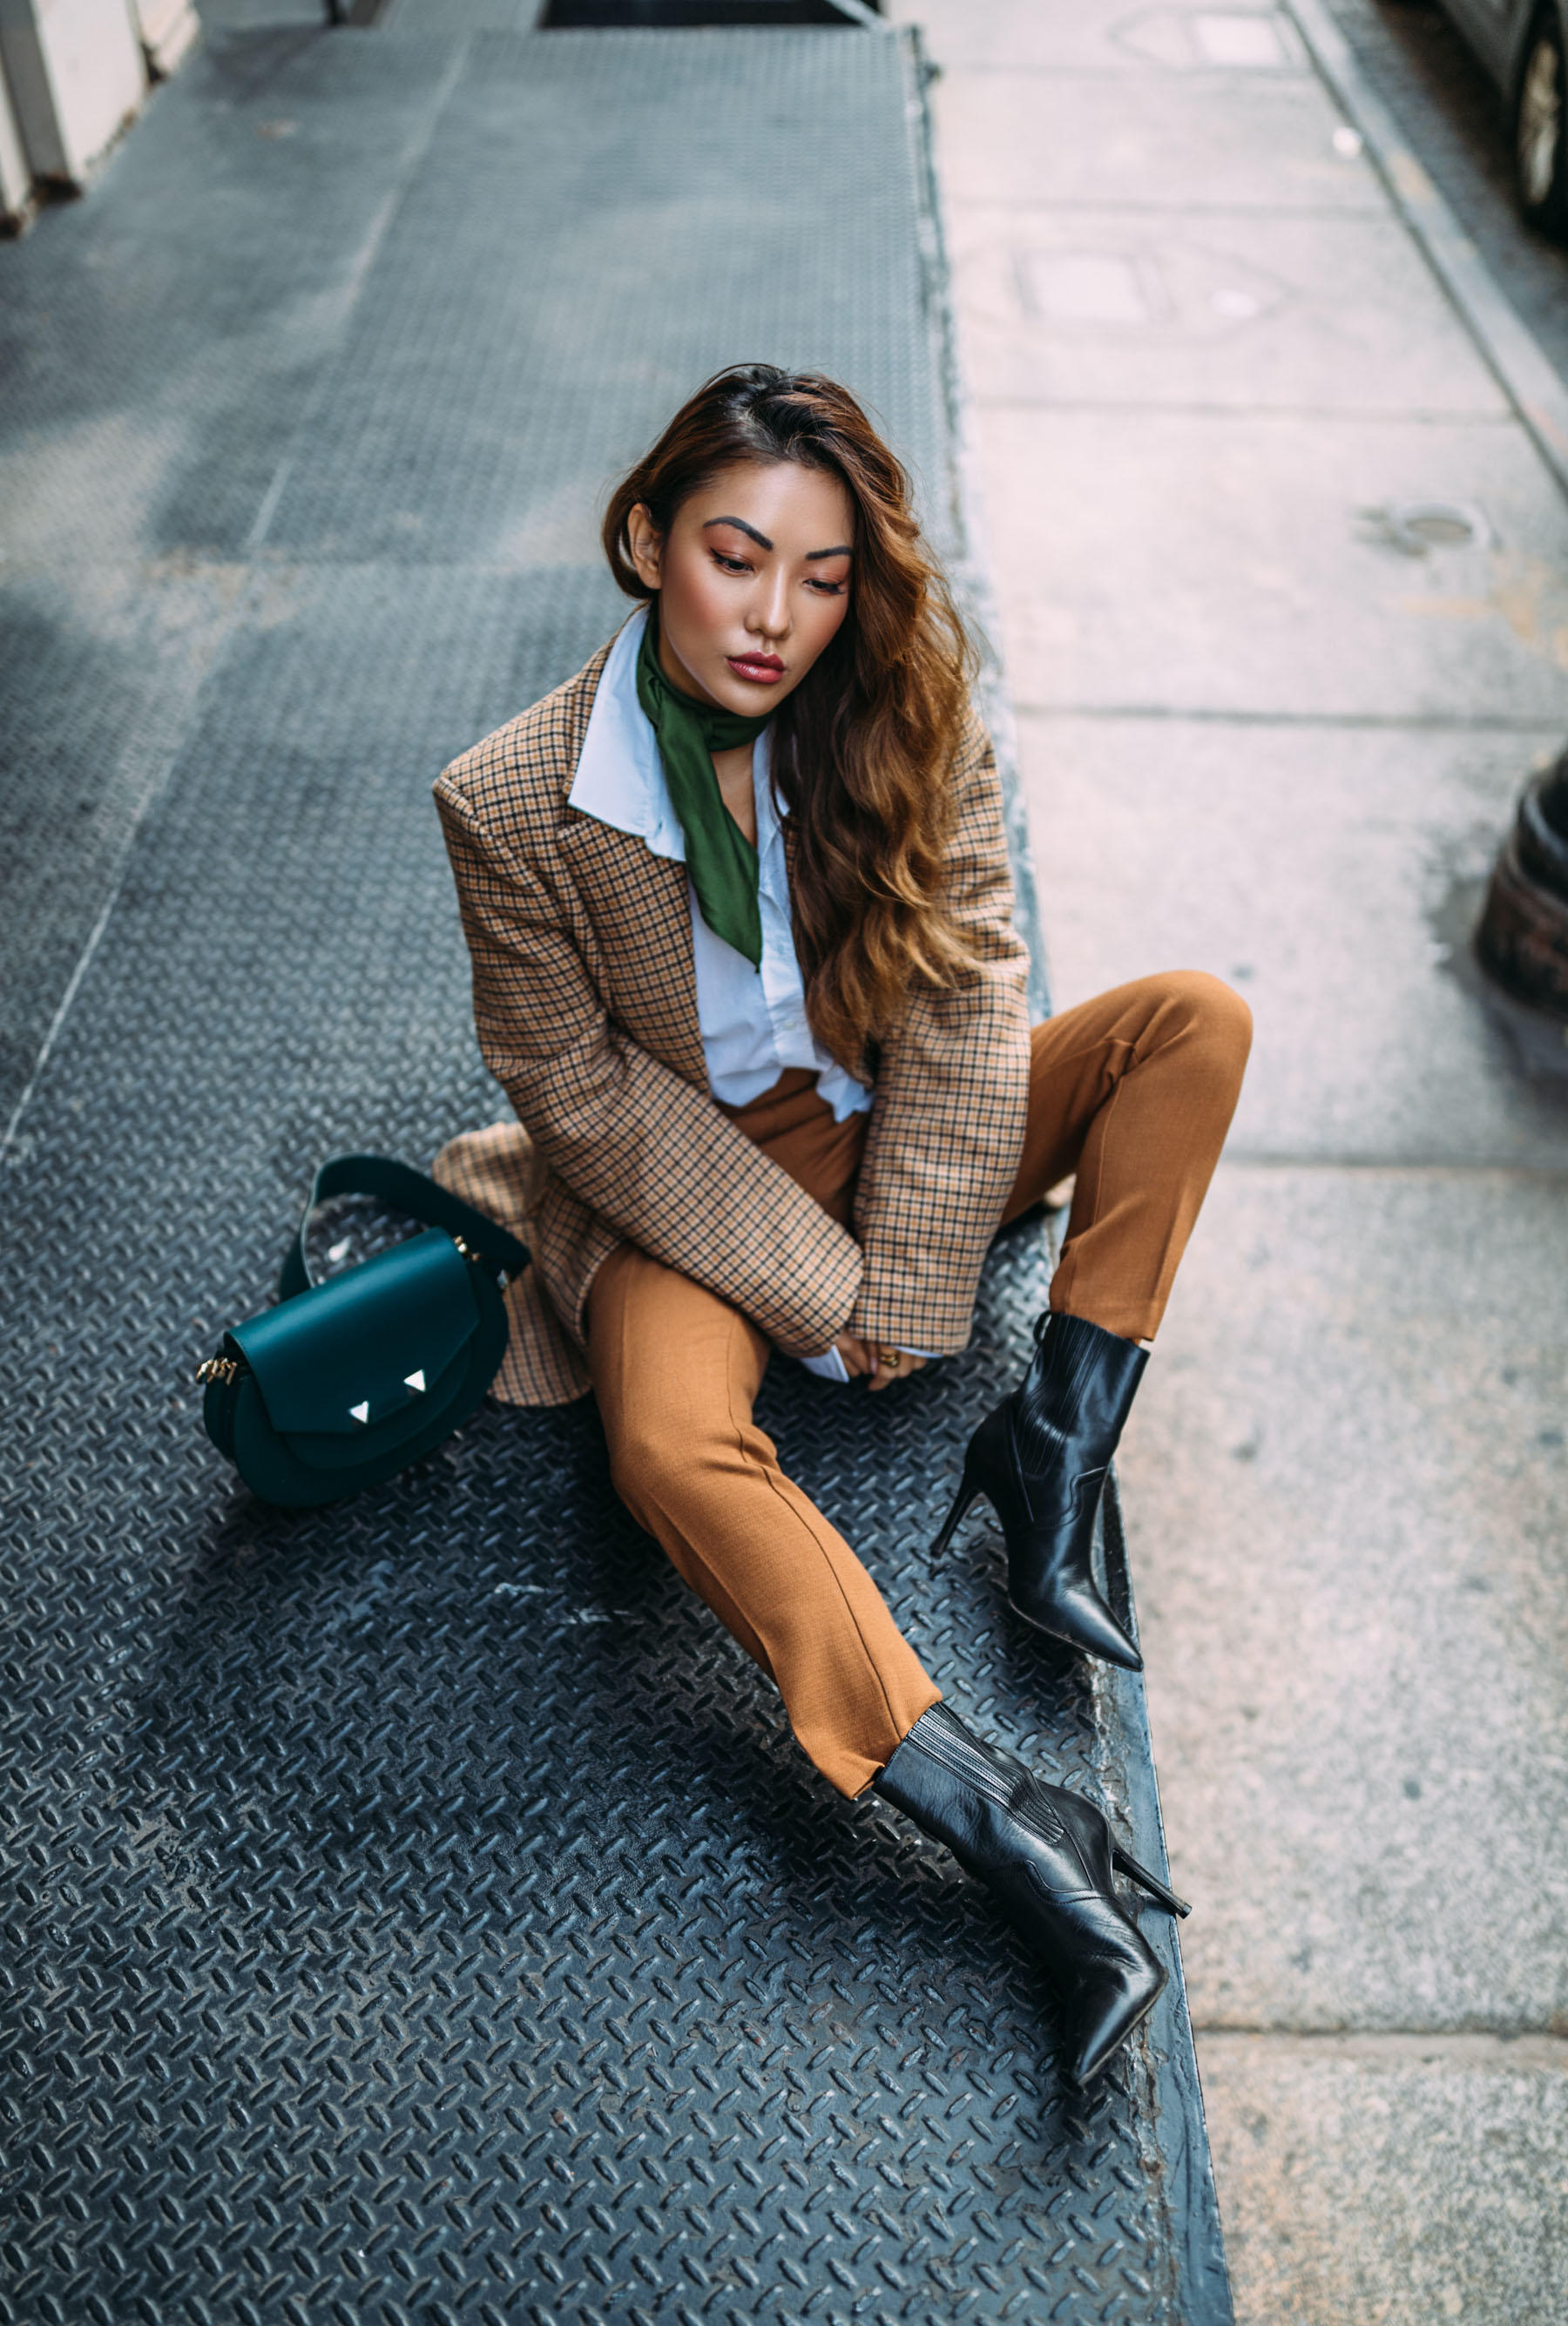 4 Key Pieces to Pull Off Menswear-Inspired Outfit // Notjessfashion.com // NYC fashion blogger, top fashion blogger, asian blogger, oversized blazer, plaid blazer, menswear inspired fashion, jessica wang, green accessories, fashion blogger street style